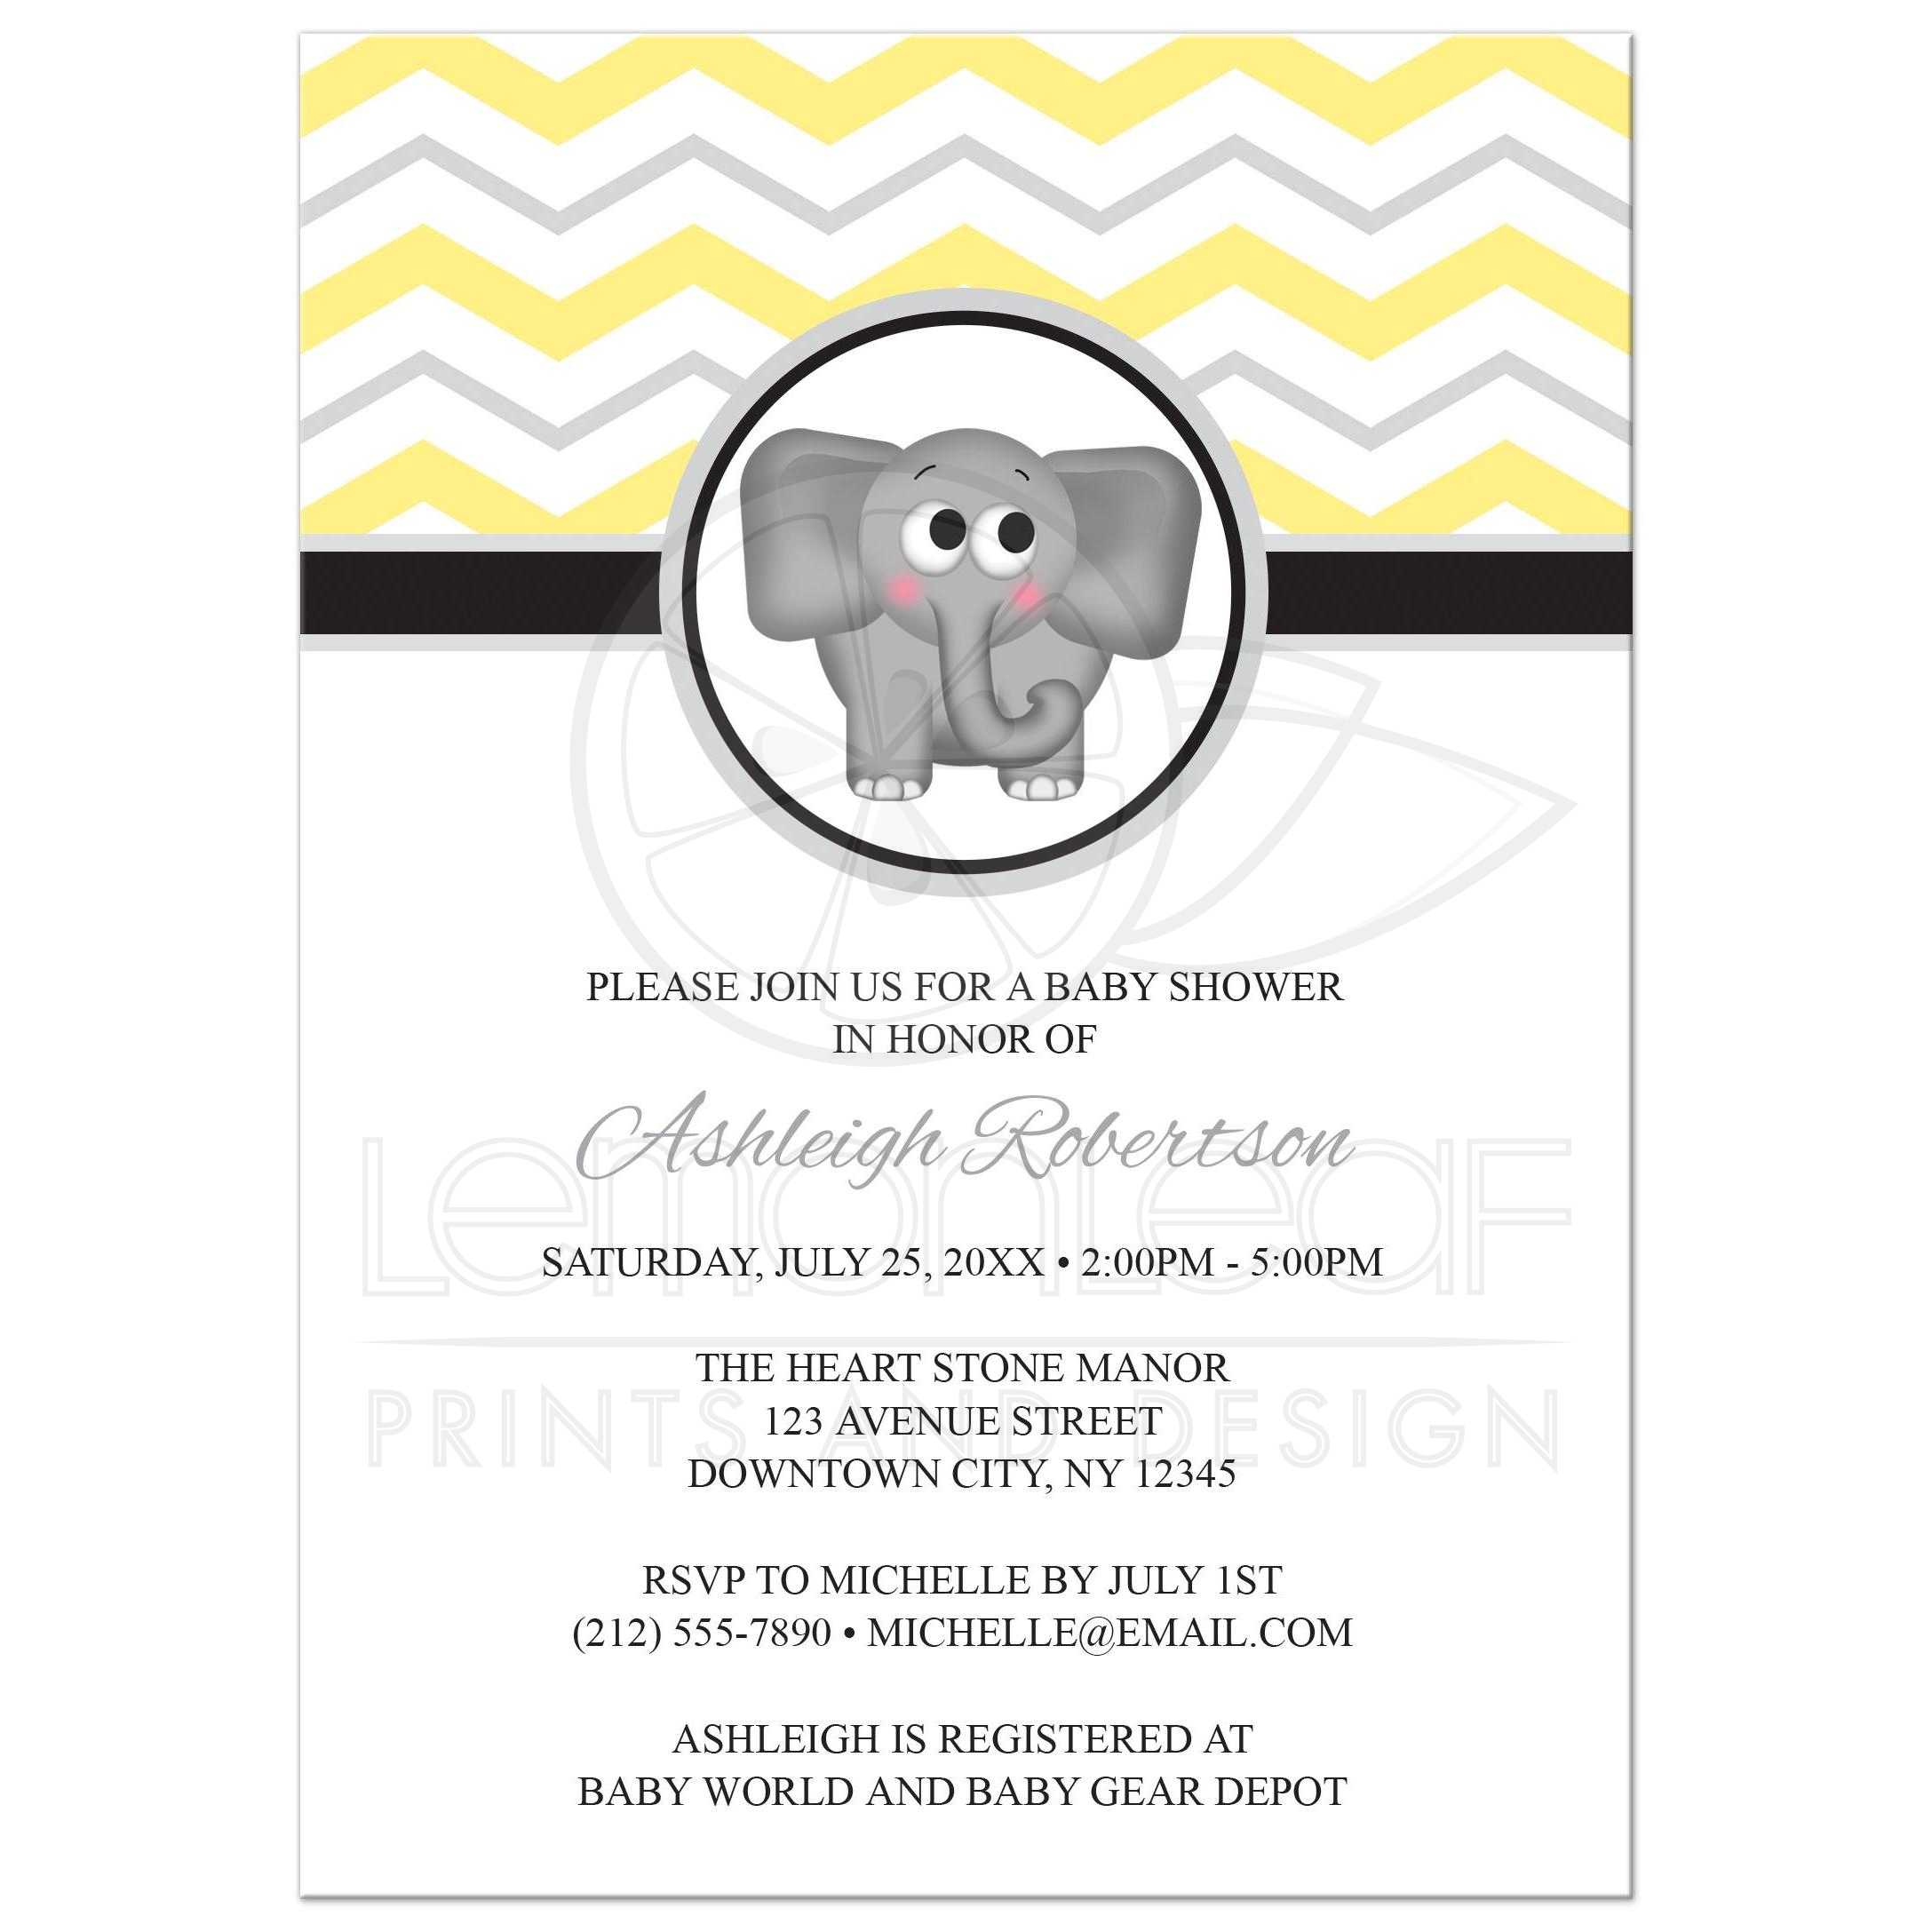 32664 Rectangle Elephant Yellow Gray Chevron Baby Shower Invitations Jpg T 1430921474